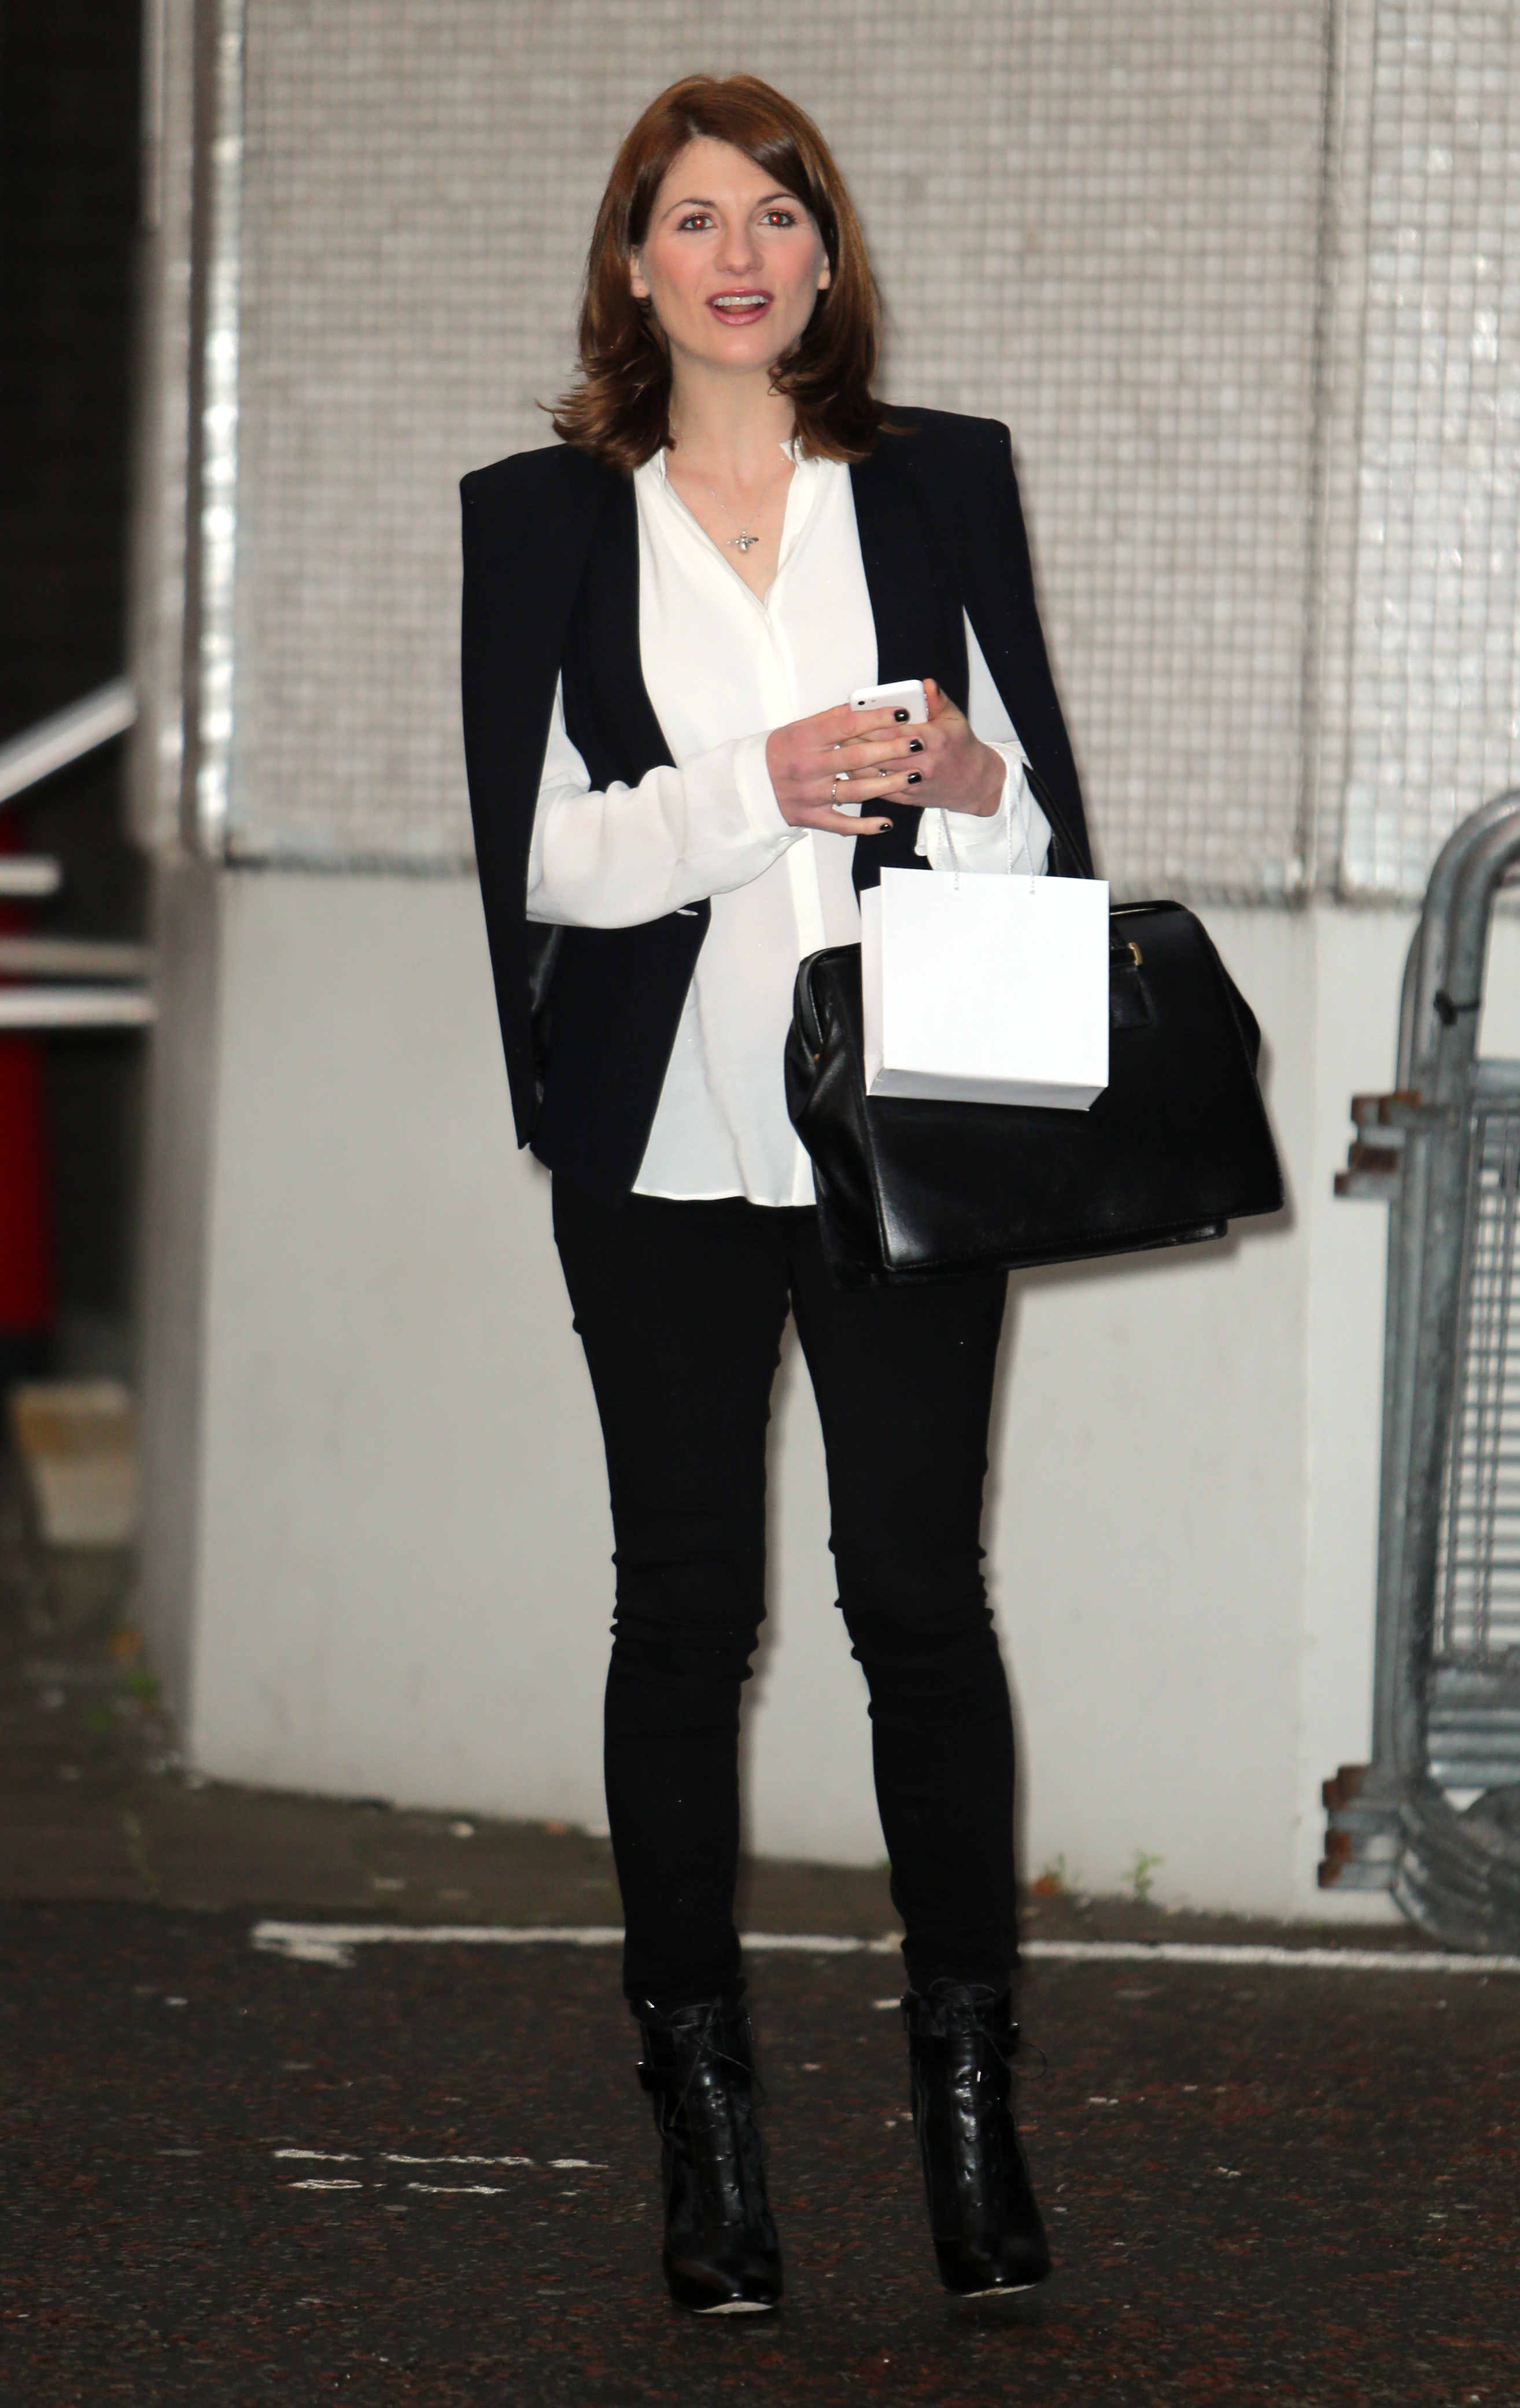 Jodie Whittaker outside the ITV Studios  Featuring: Jodie Whittaker Where: London, United Kingdom When: 04 Dec 2014 Credit: Rocky/WENN.com